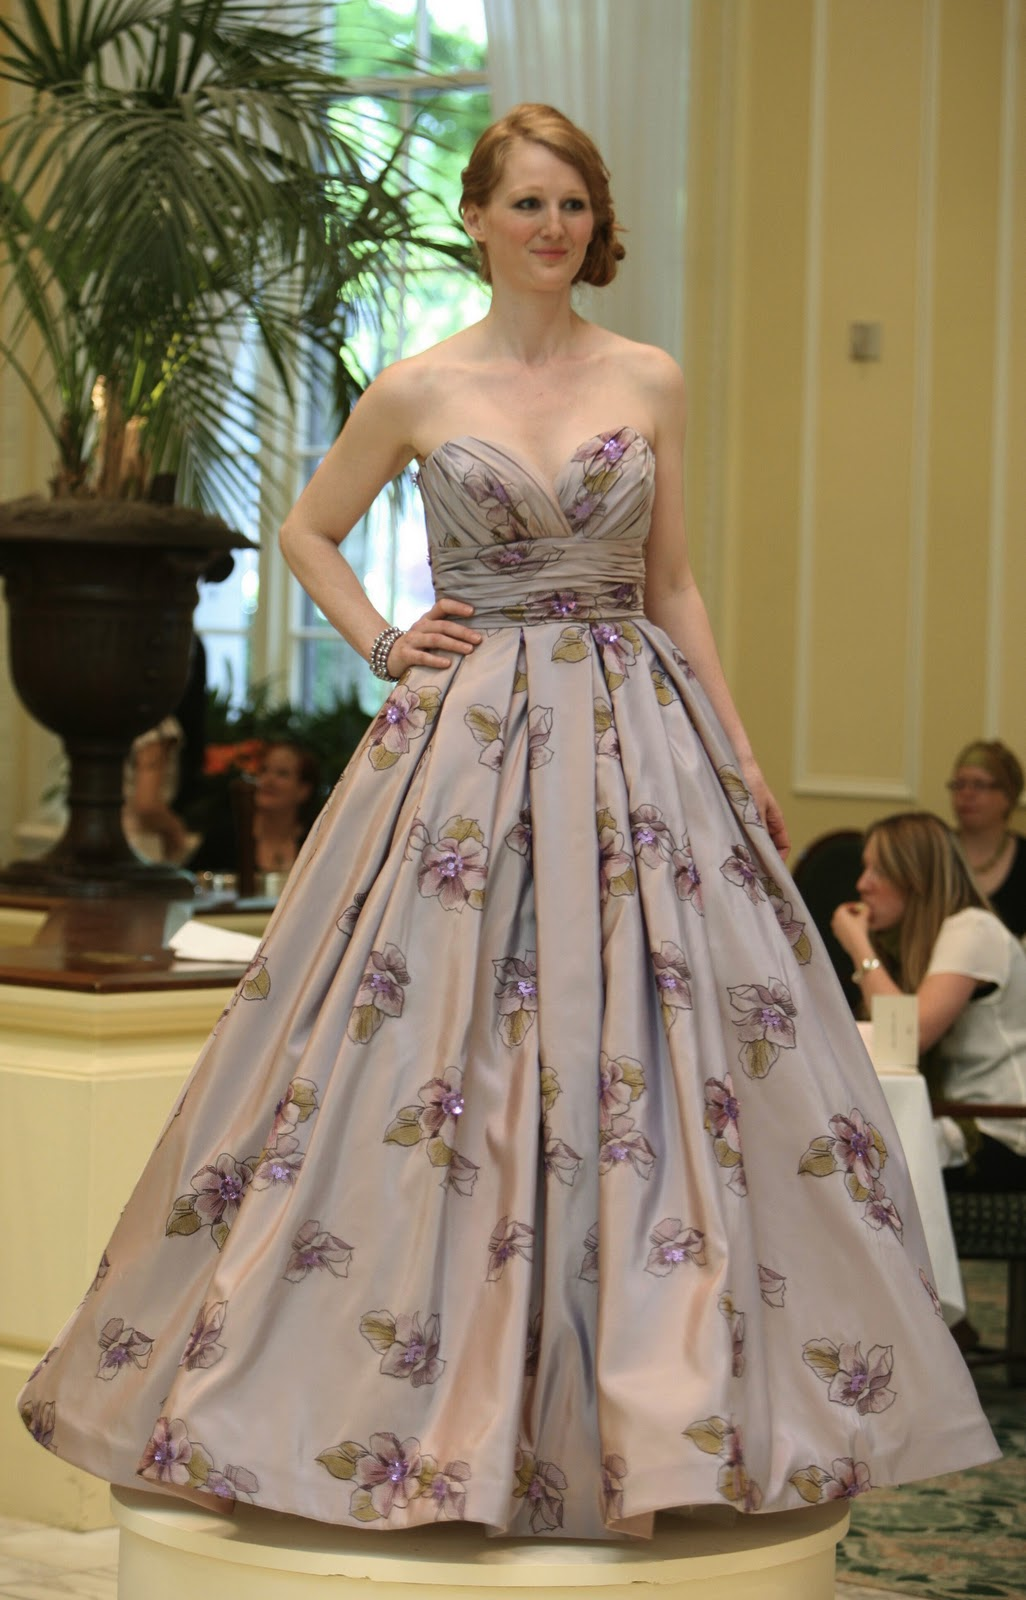 French-inspired-patterned-floral-wedding-dress-sweetheart-neckline.original